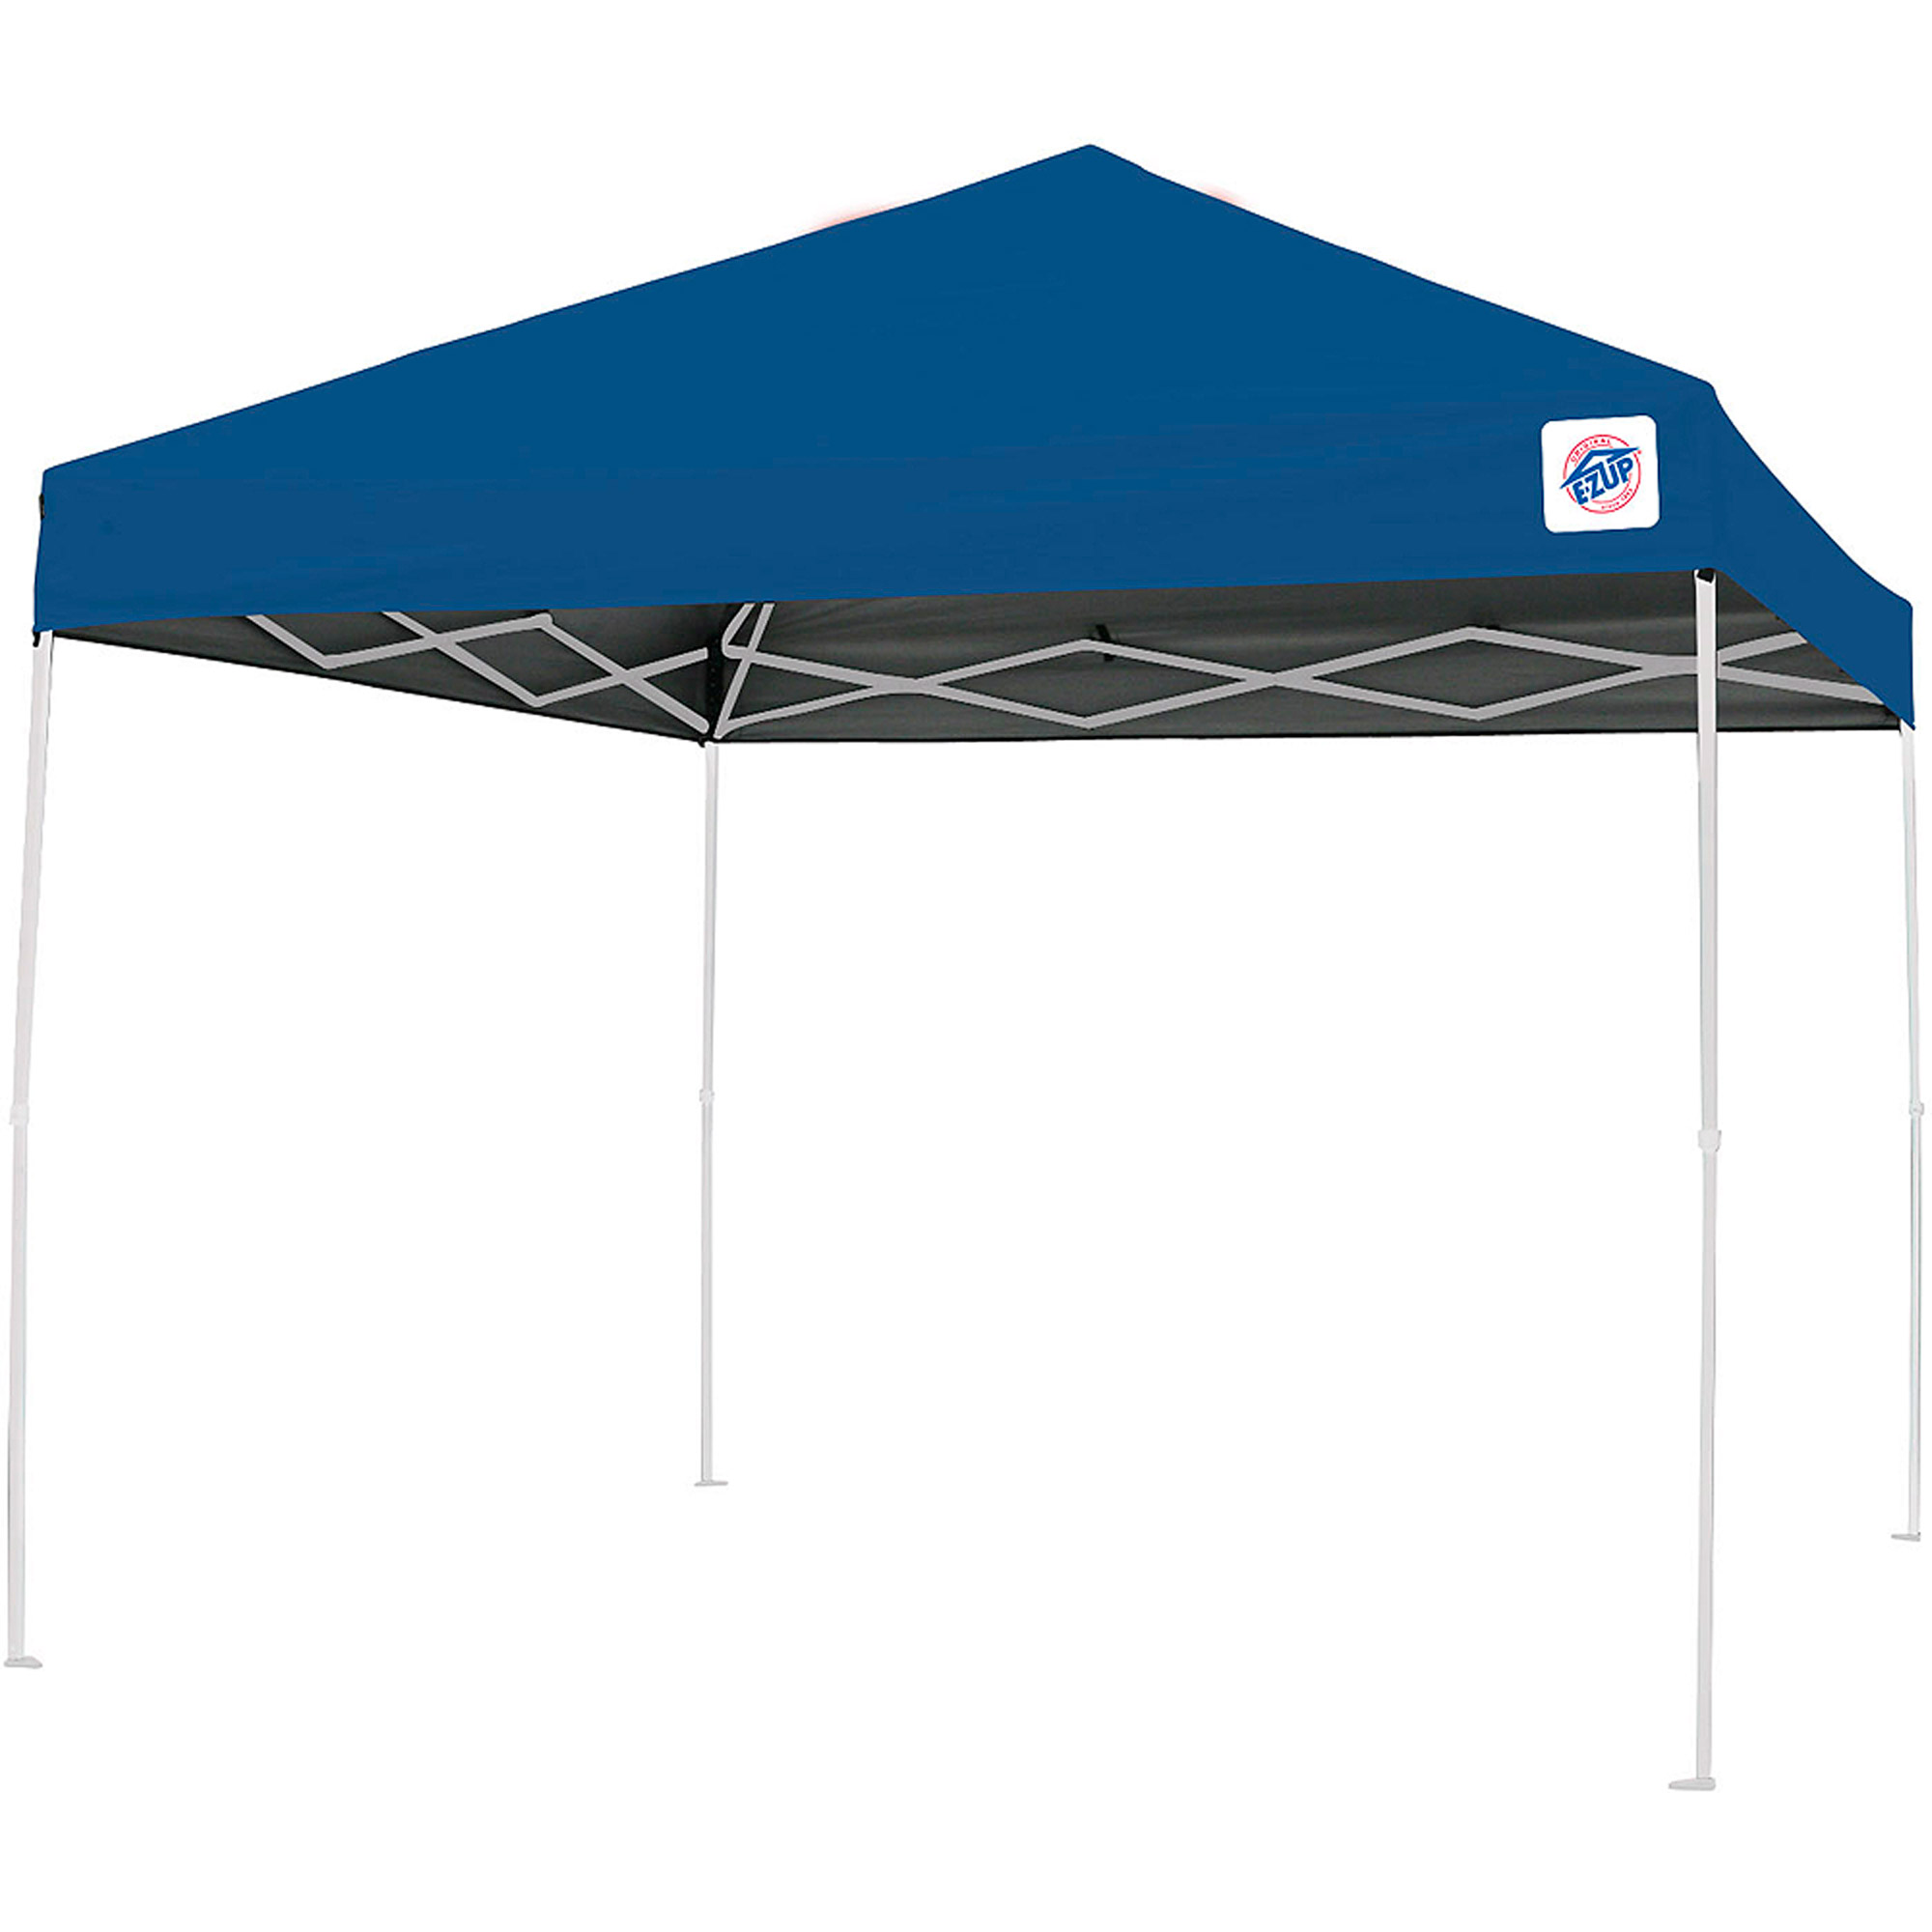 40 x 20 Ft Heavy Duty Commercial Party Canopy Car Shelter Wedding C&ing Tent - Walmart.com  sc 1 st  Walmart : tent wallmart - afamca.org